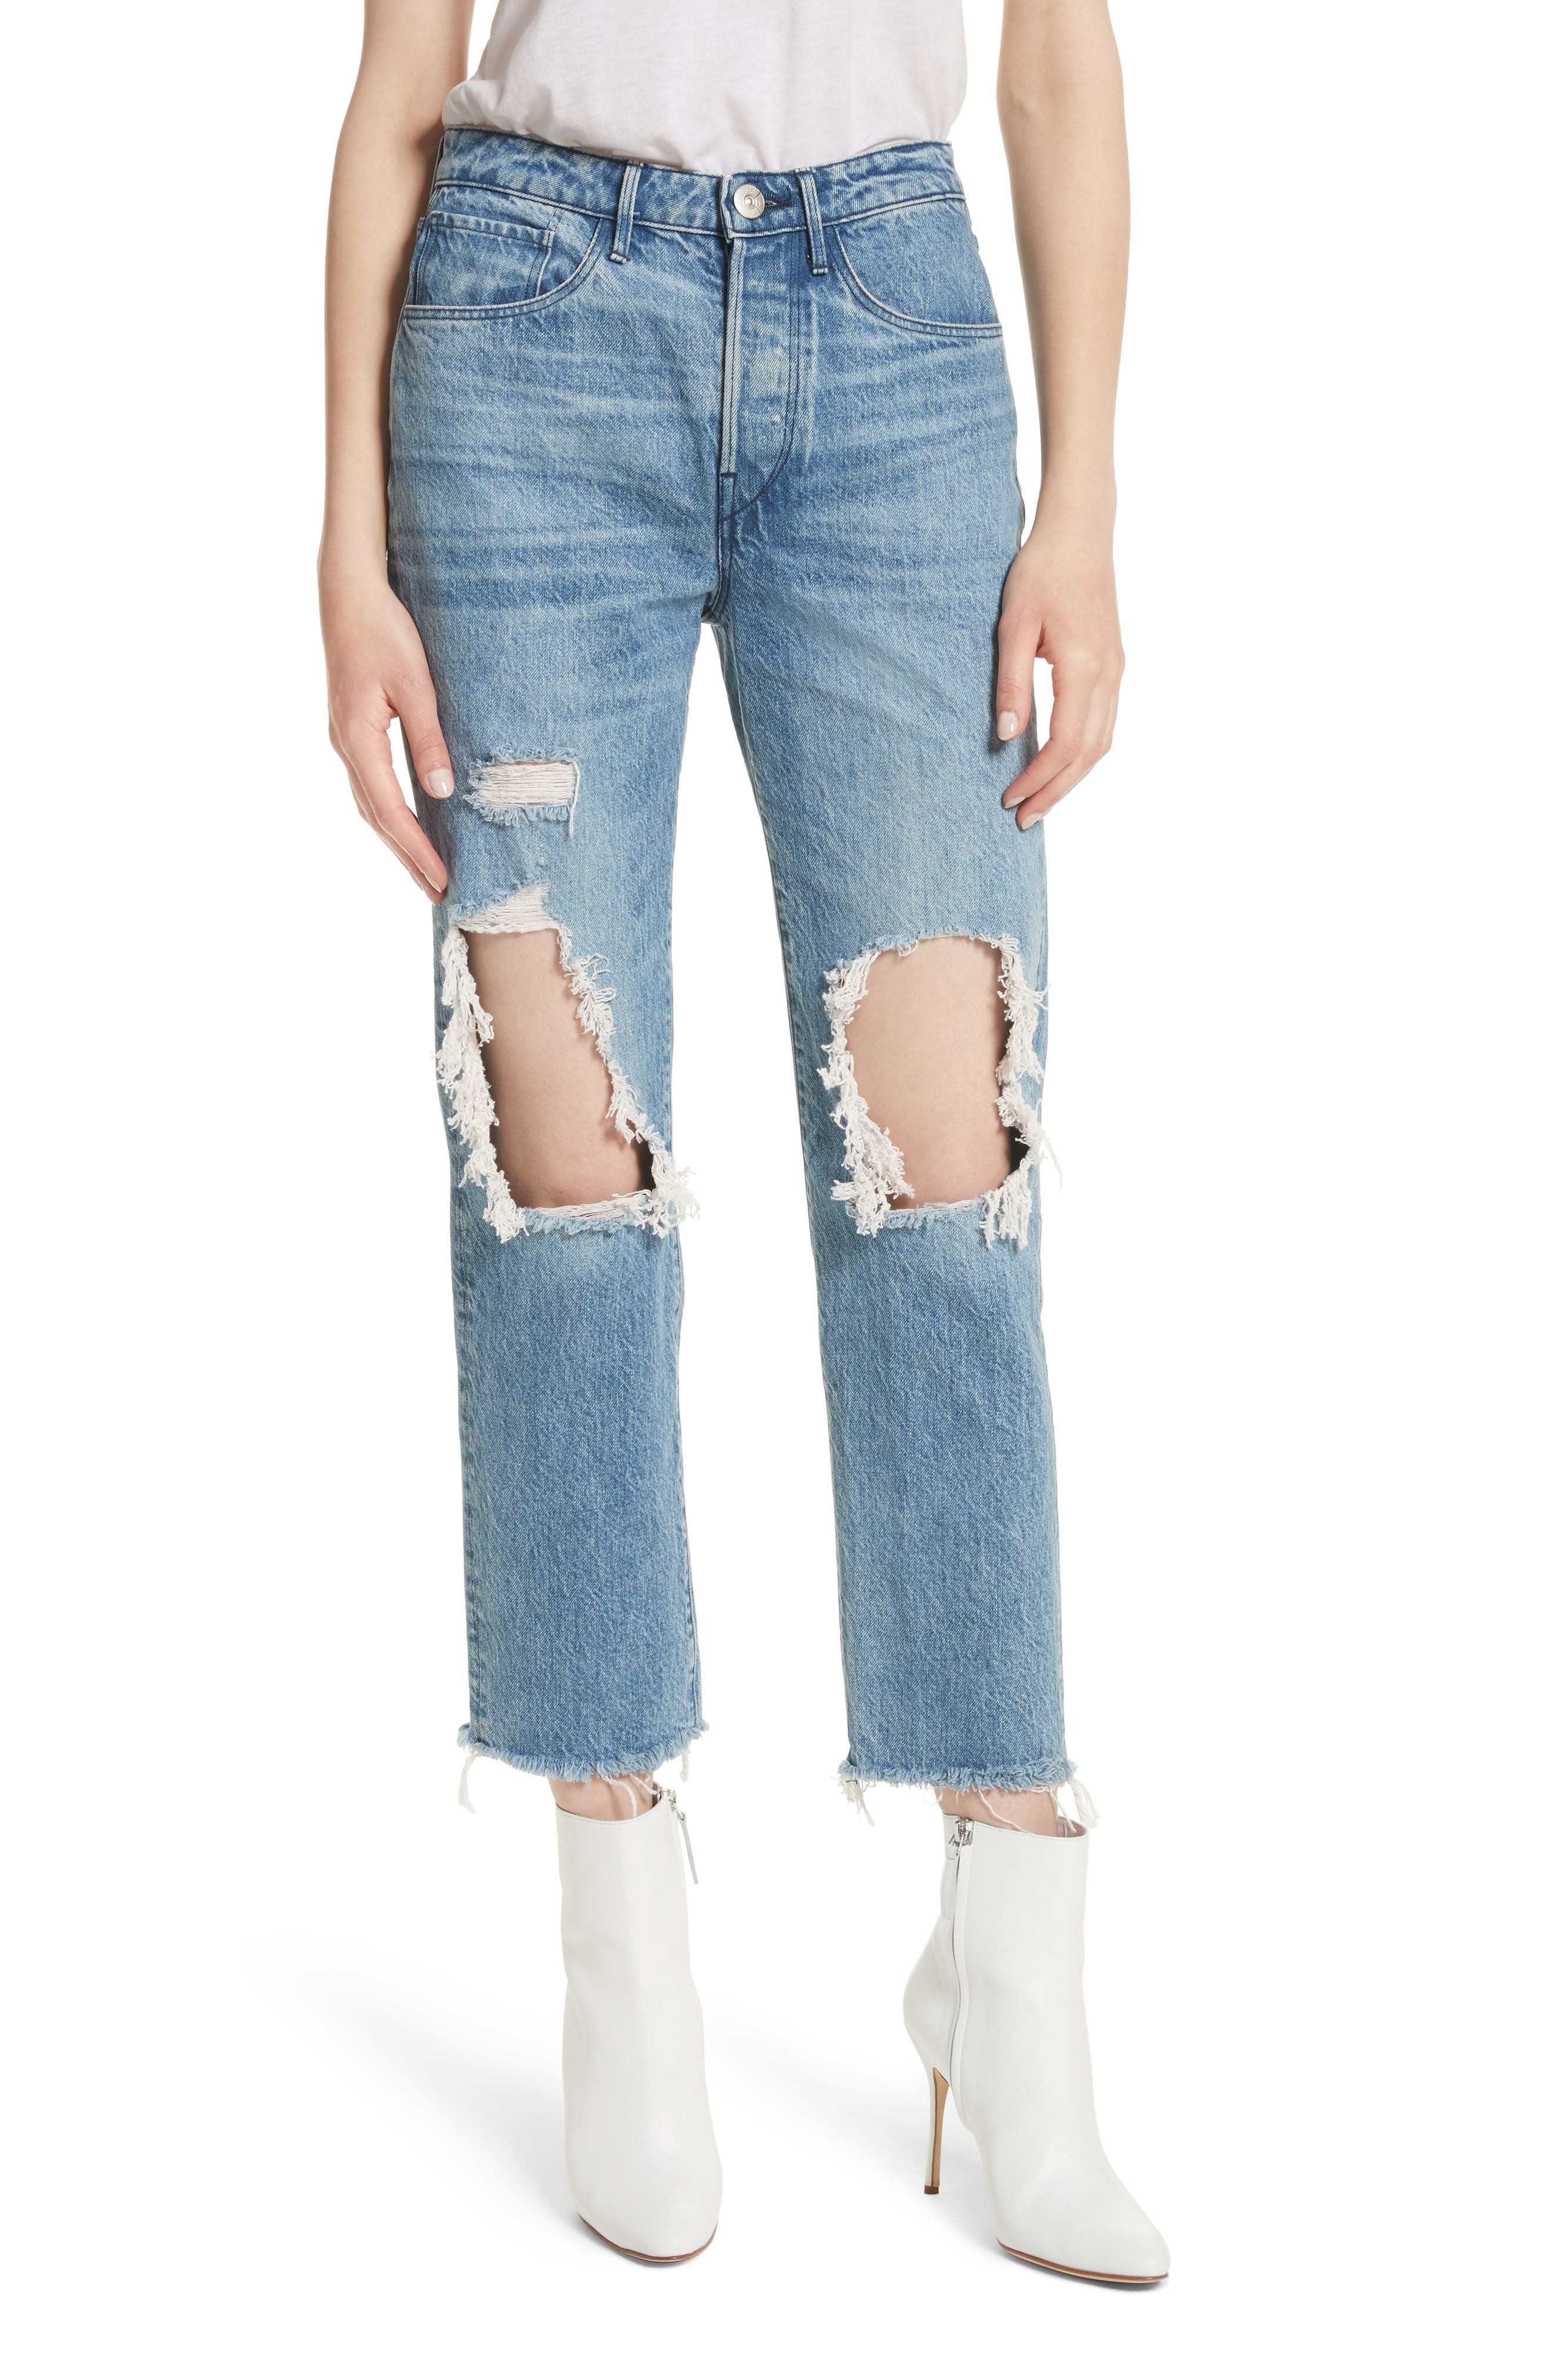 Woman Higher Ground Shatter Distressed Boyfriend Jeans Light Denim Size 25 3x1 2018 New Online Sale Great Deals Official Site Cheap Price 2Pq24cE